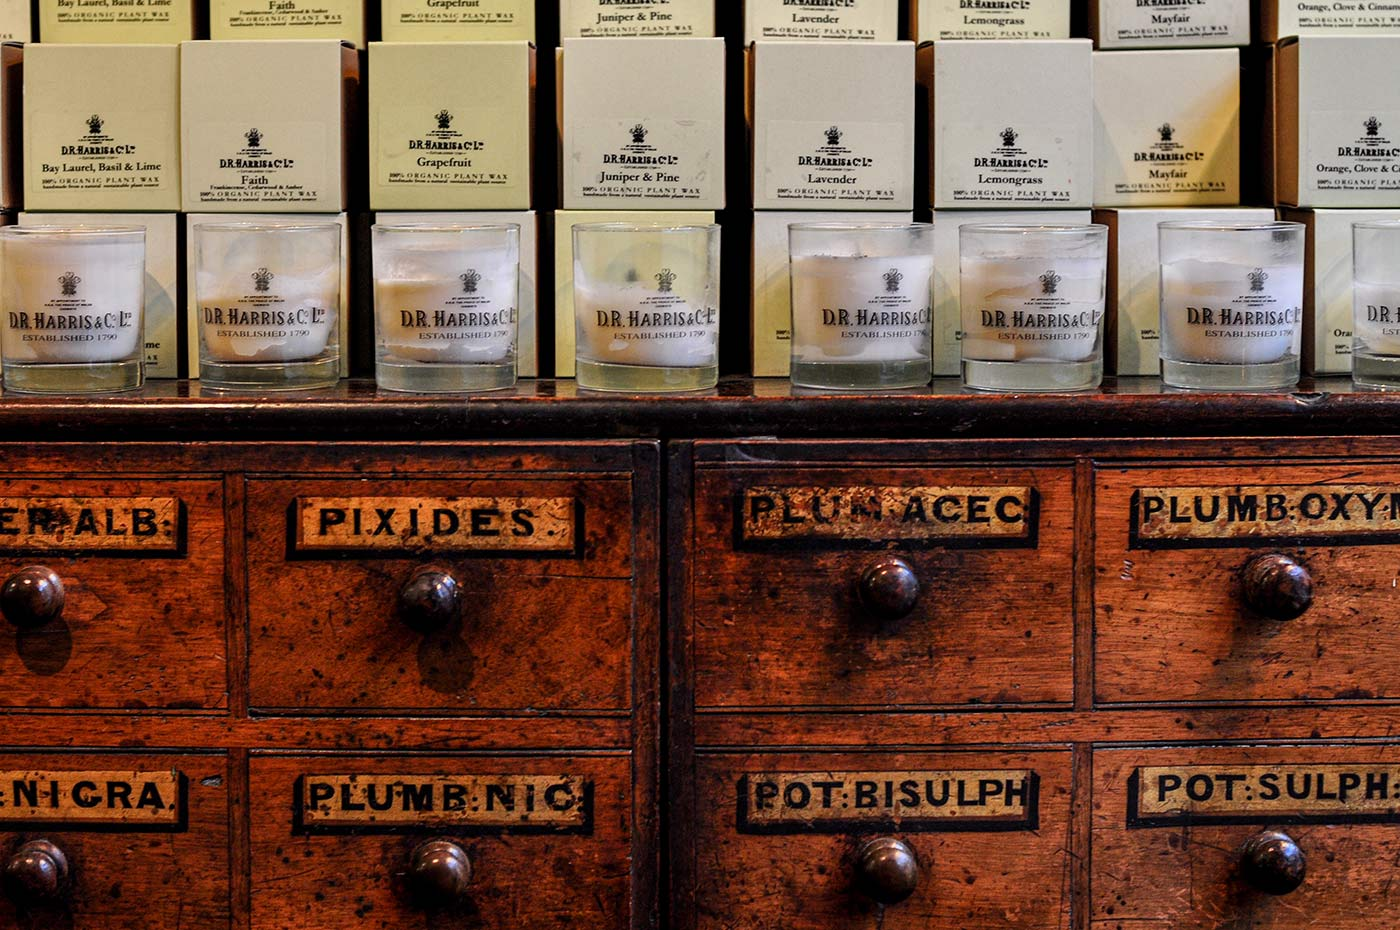 Dr Harris 005 | D.R Harris Apothecary  -  London